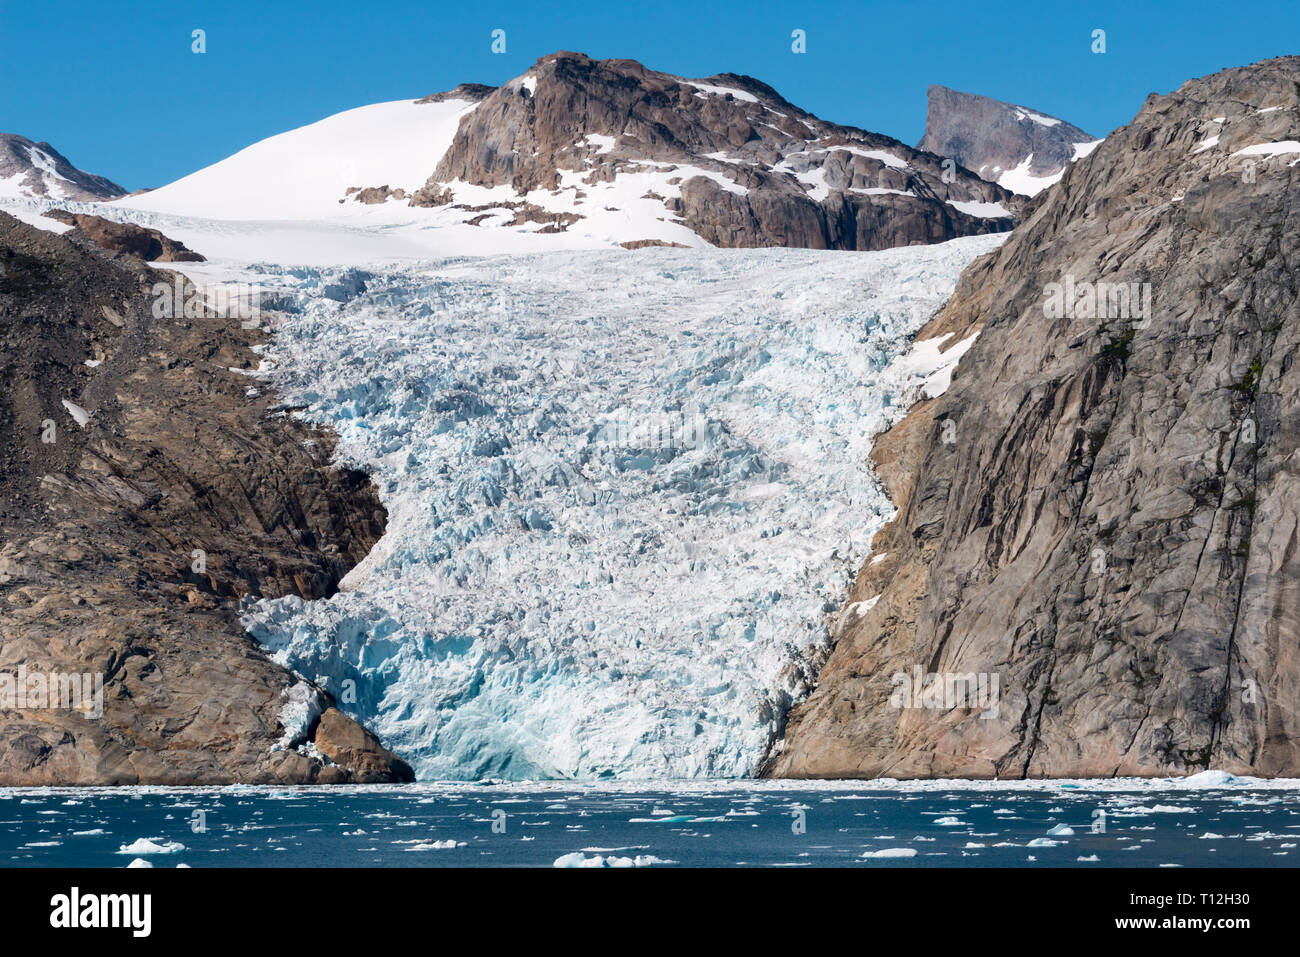 Glacier on island in Prins Christian Sund, Greenland - Stock Image